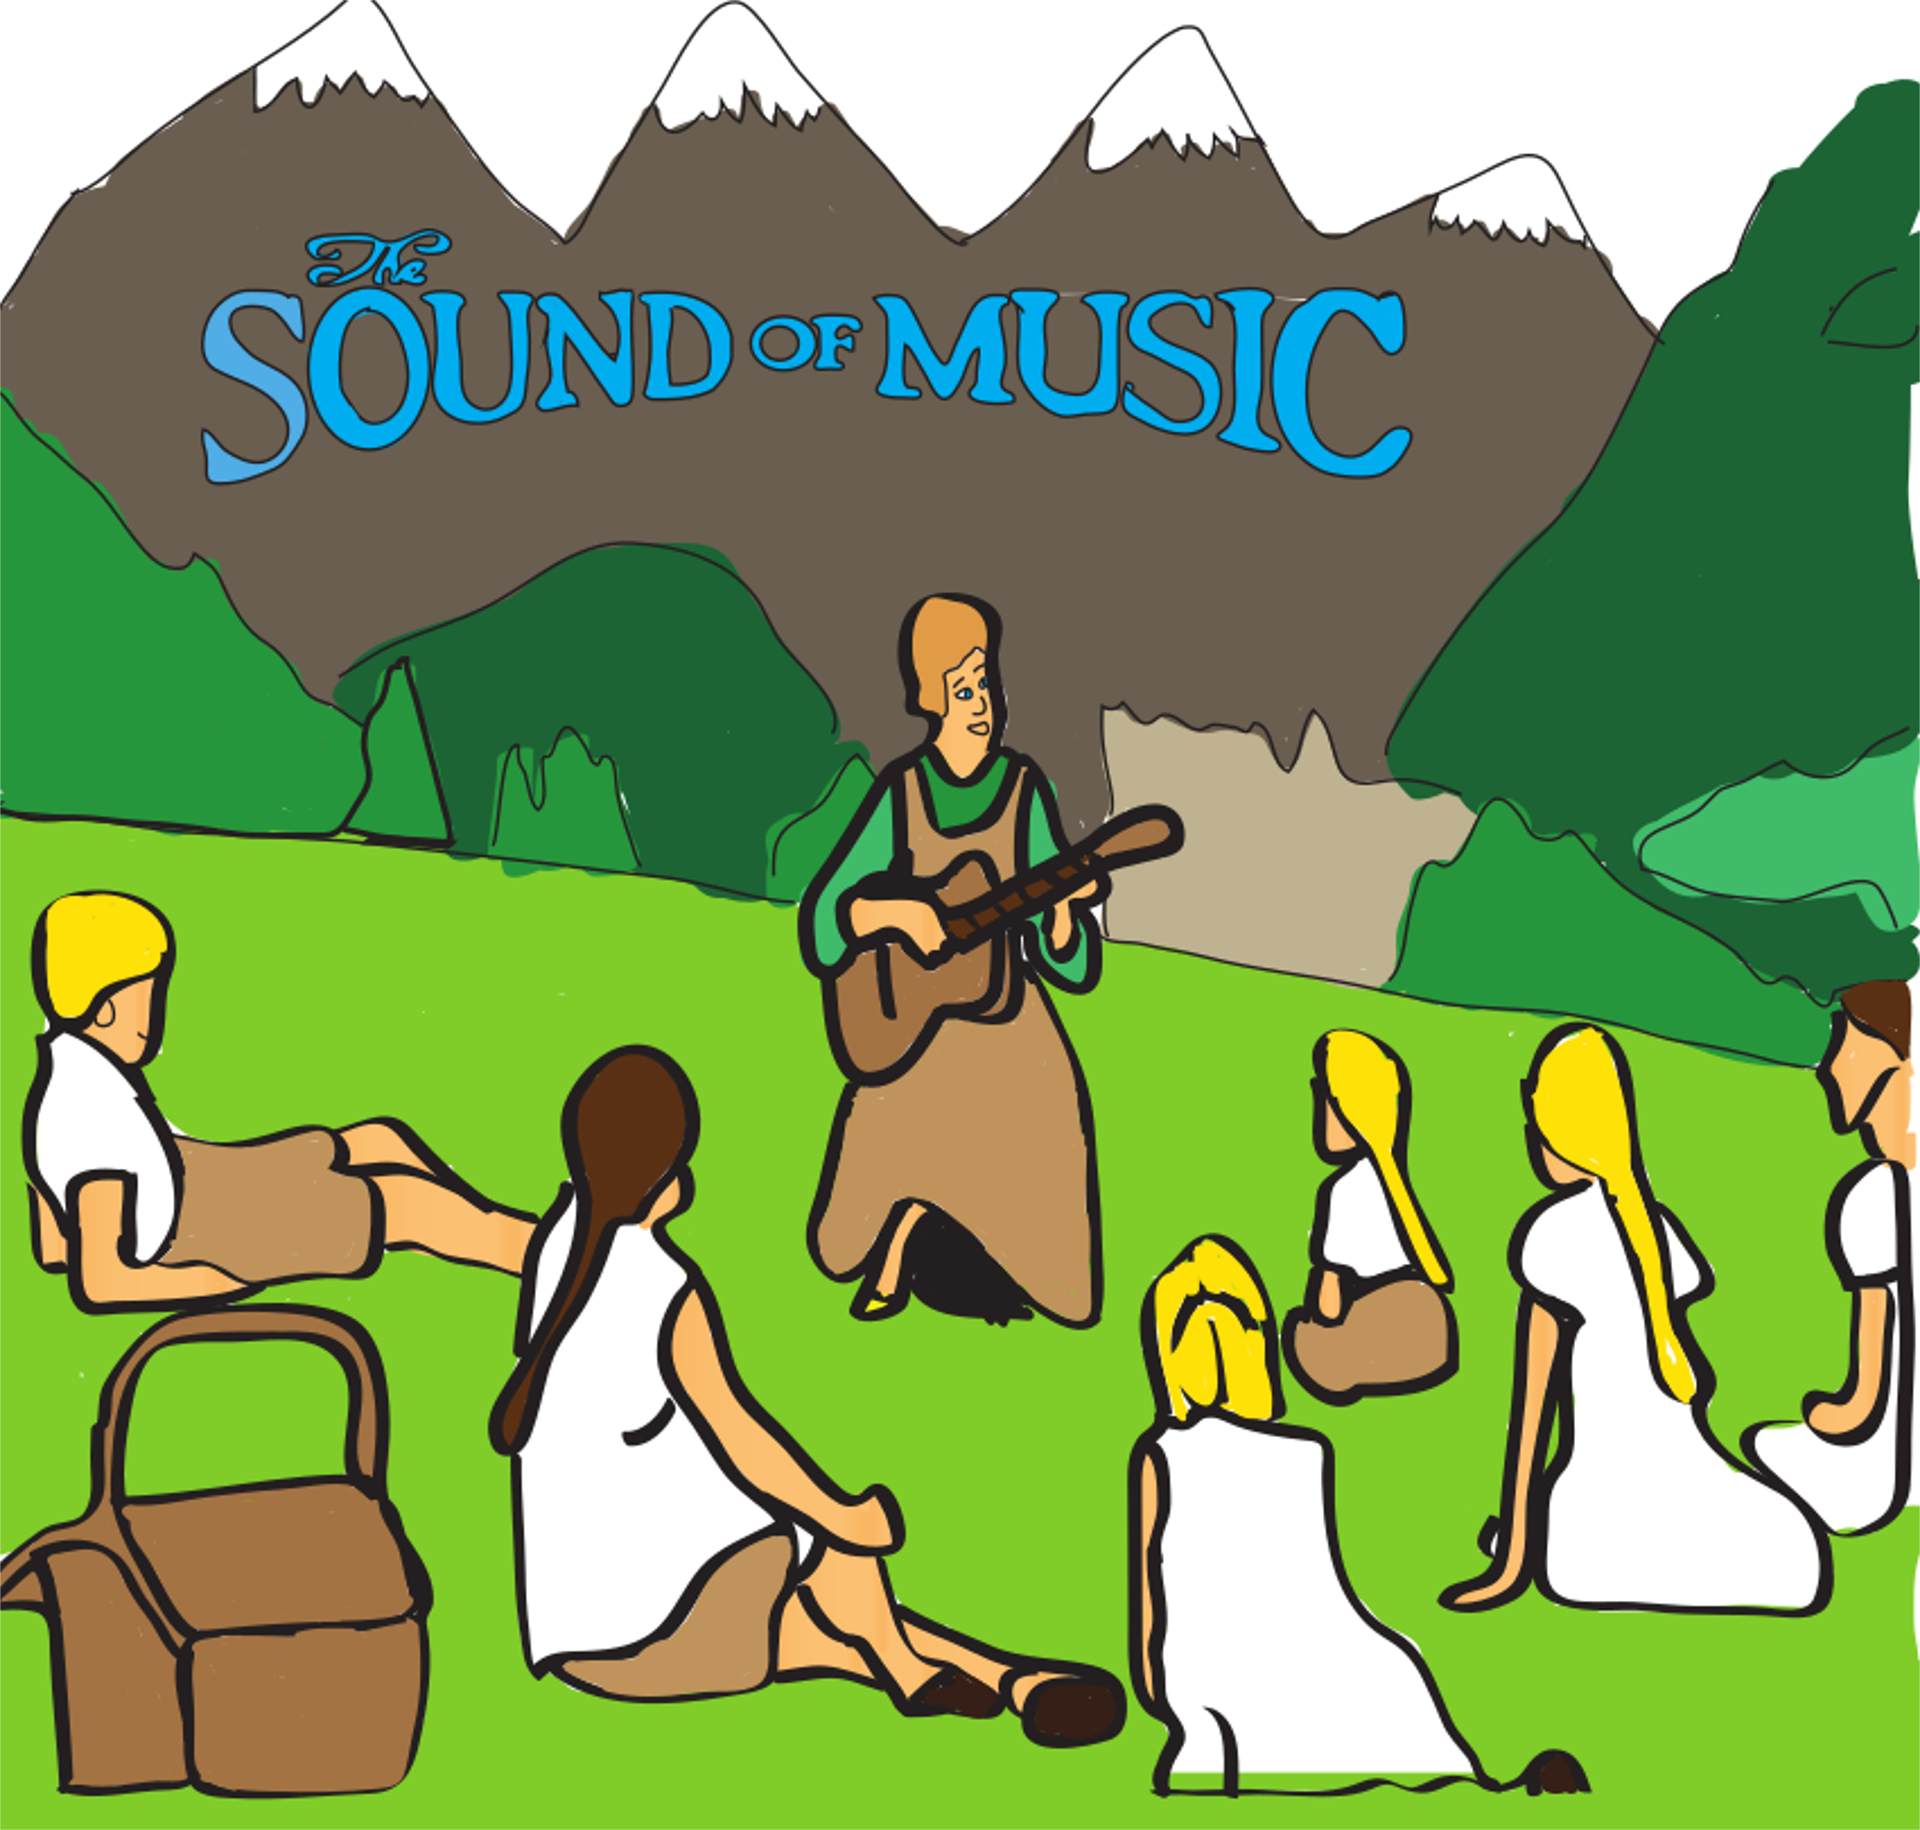 Sound of music clipart 3 » Clipart Station.